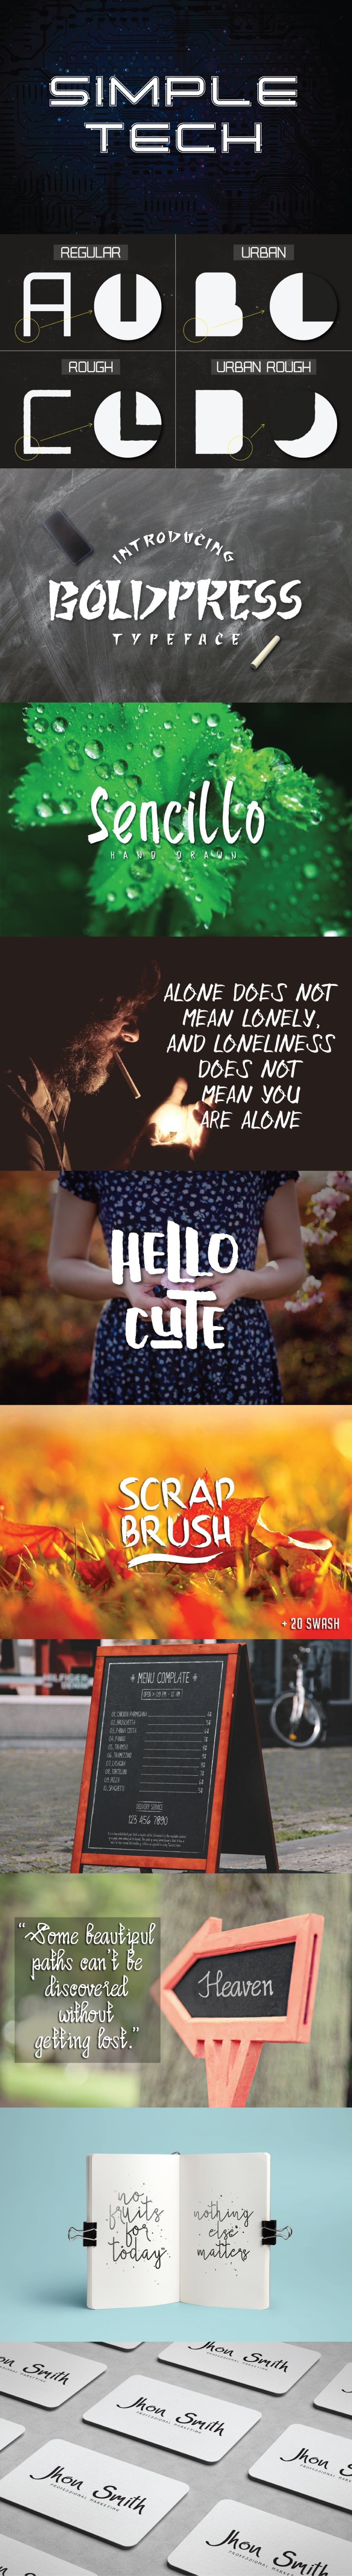 Font Bundle Best my Collection - Only $9 - Preview4